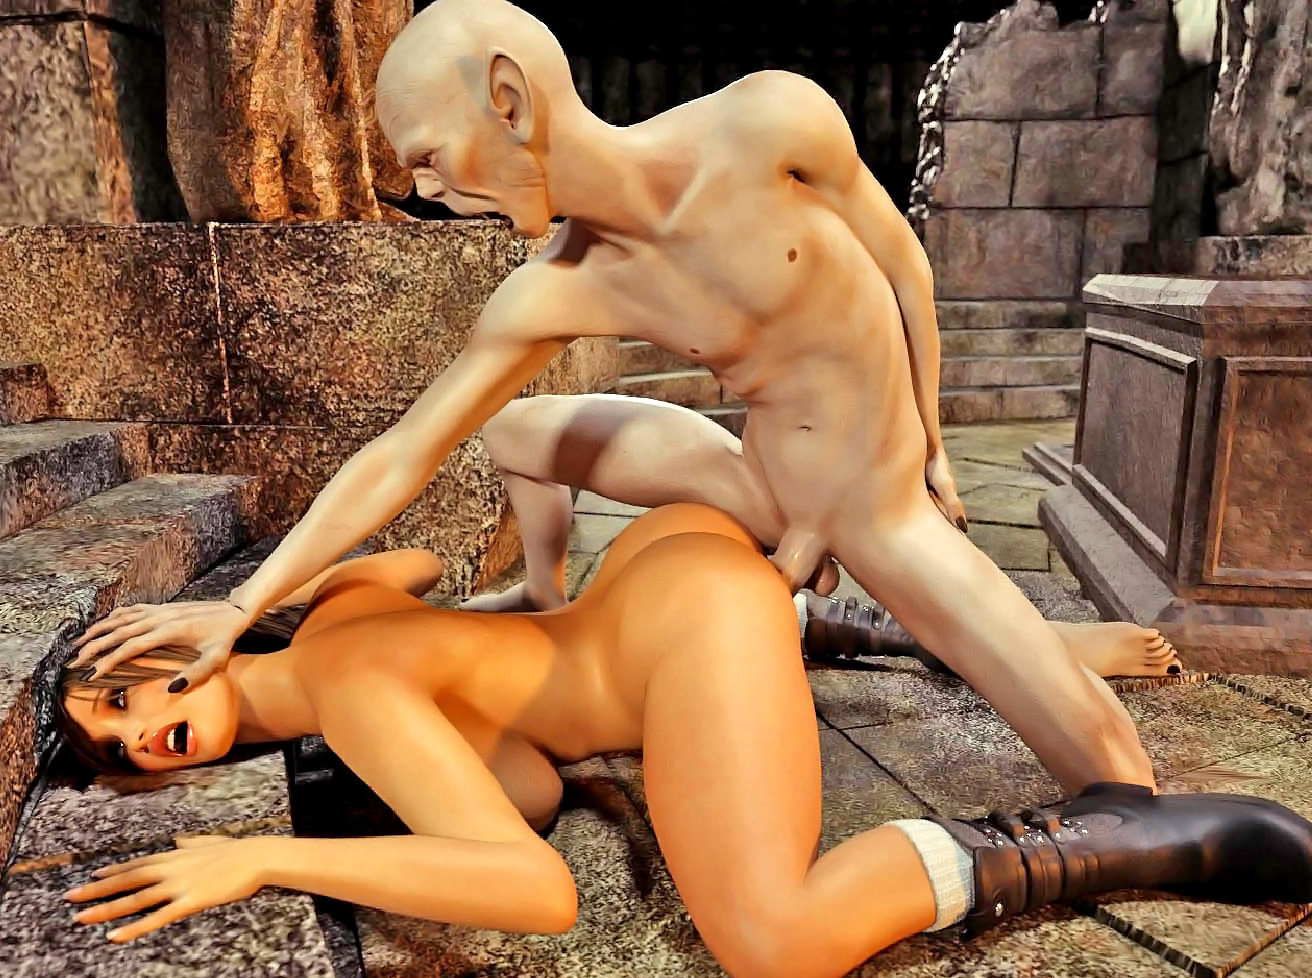 Tomb raider lara croft sex porn video  softcore photos